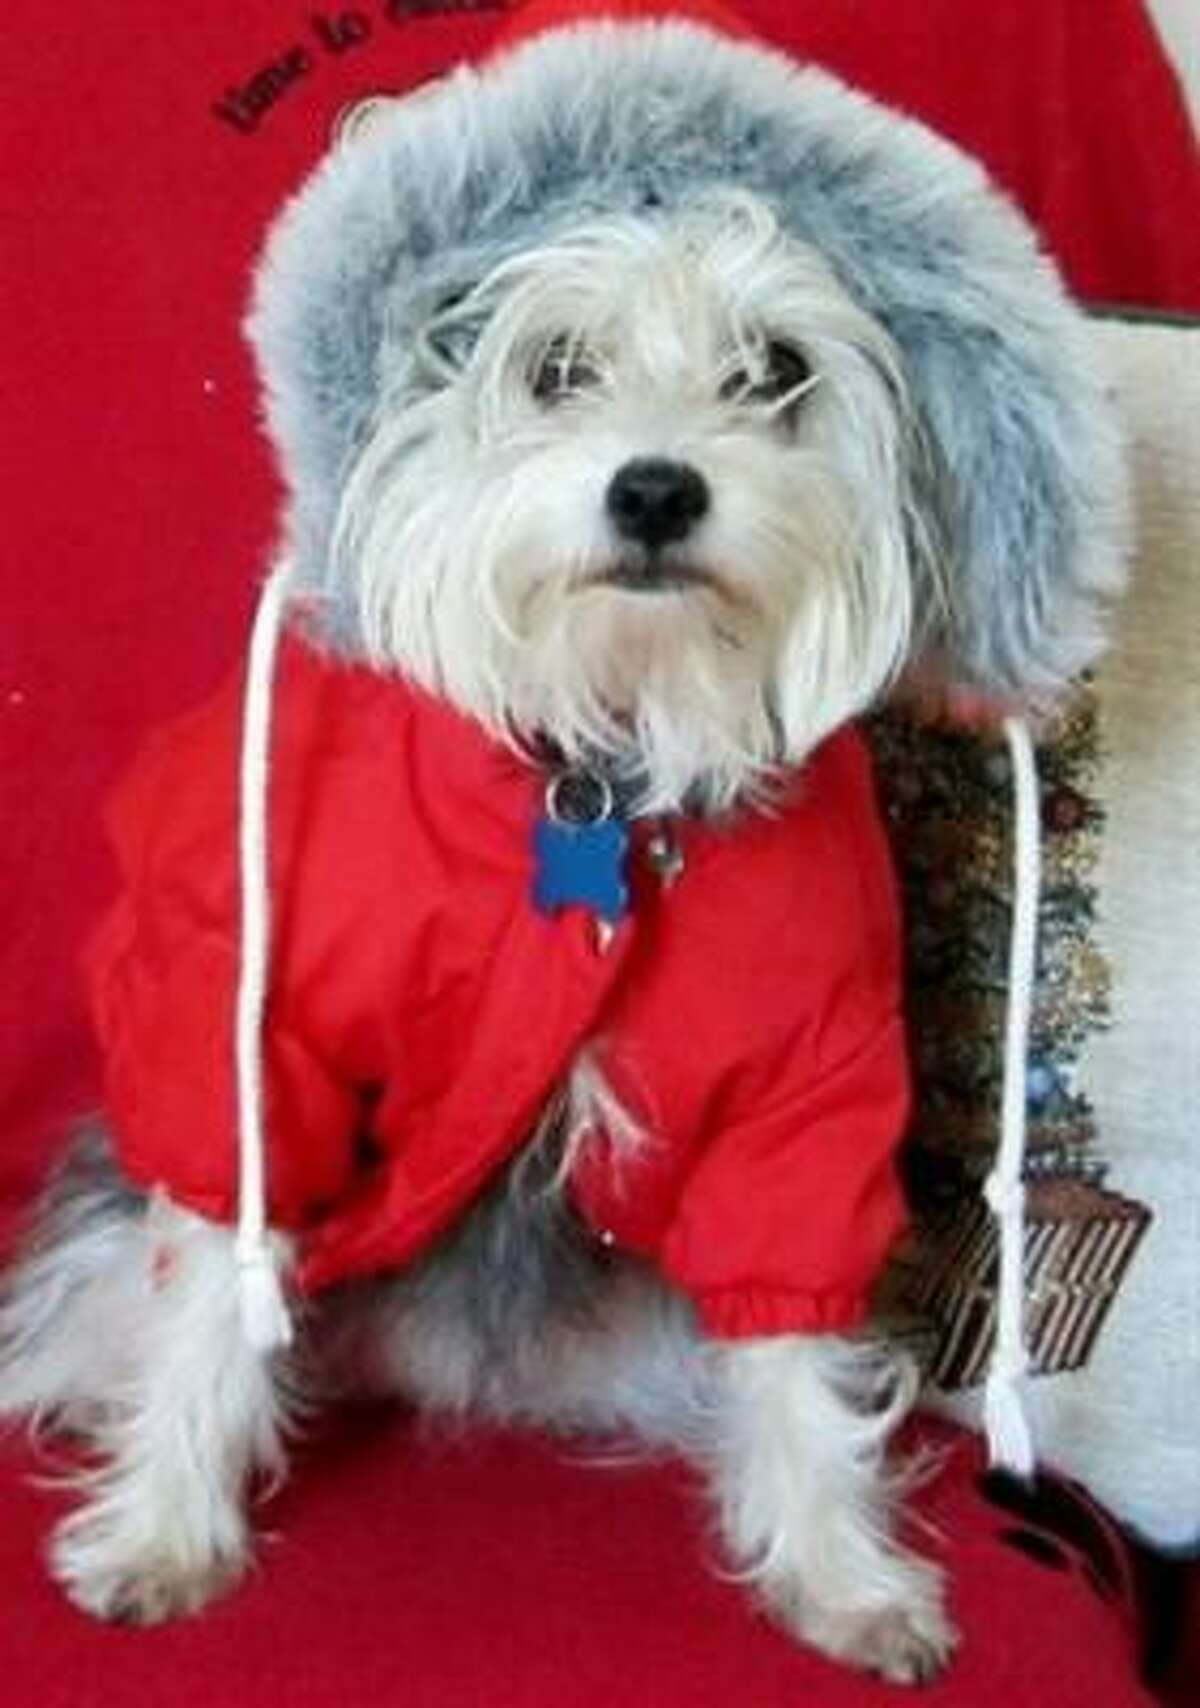 Beanie all dressed up and ready to play in the snow. Share your pet photos.